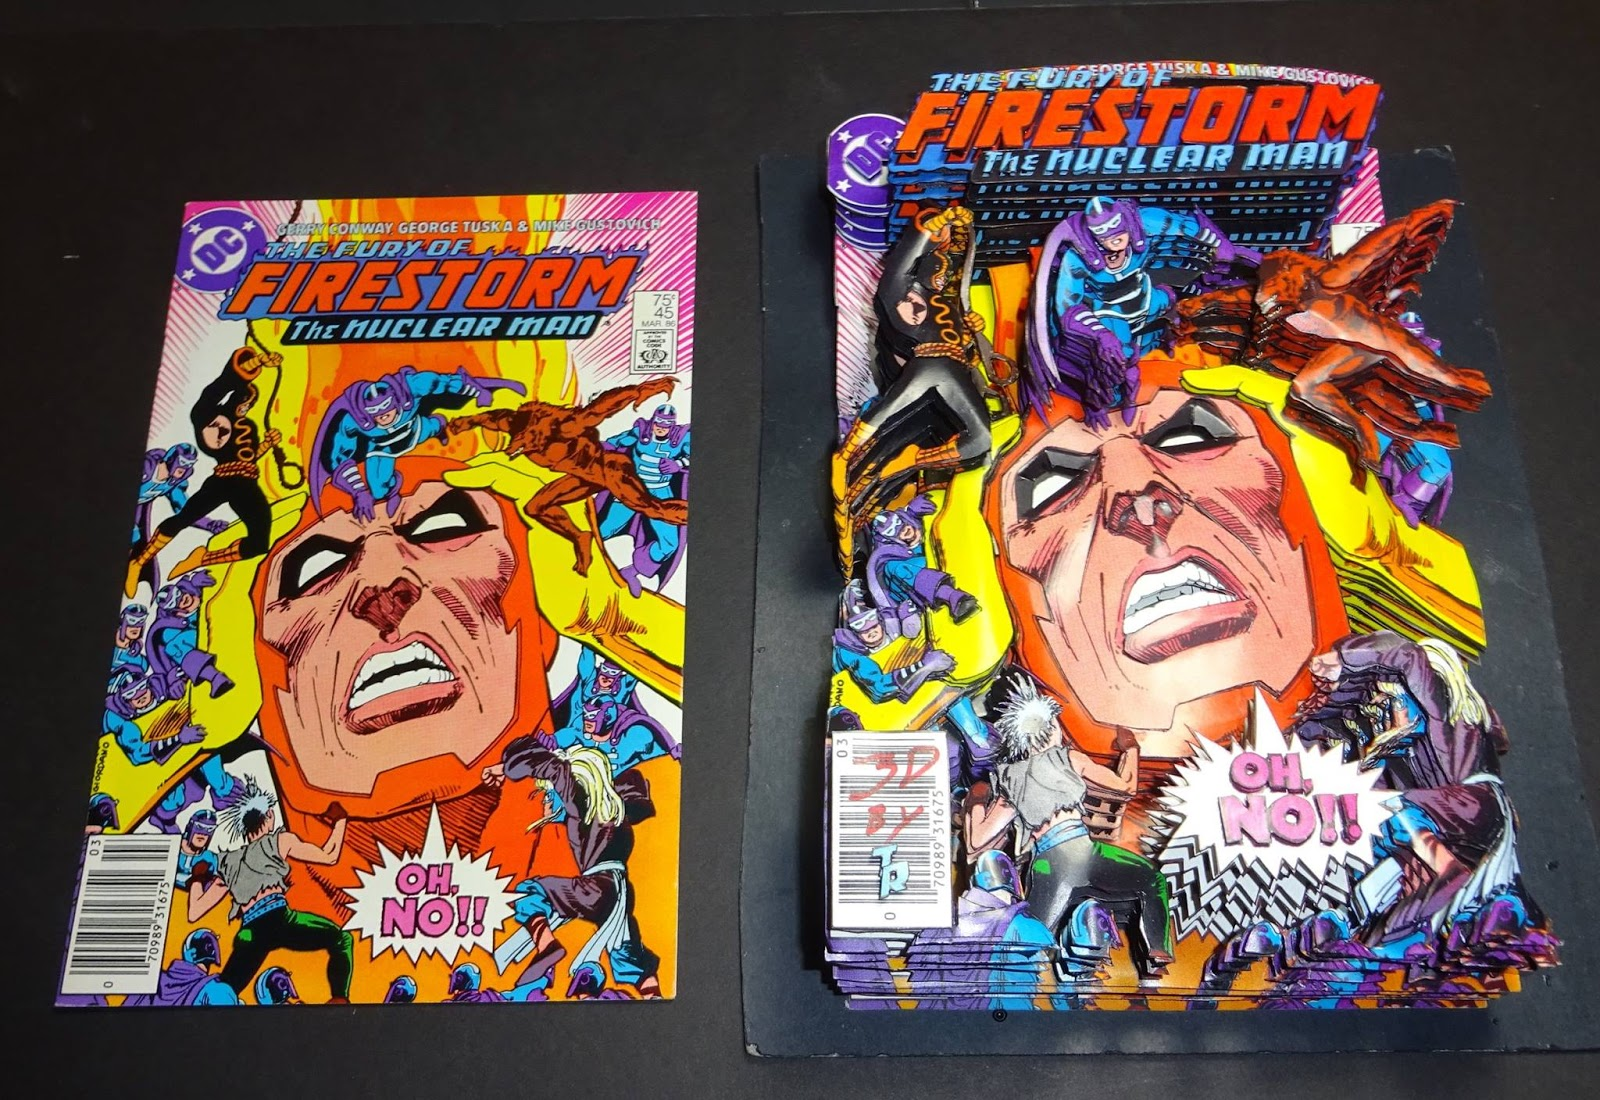 1986 Gerry Conway /& George Tuska The Fury of Firestorm The Nuclear Man No.45